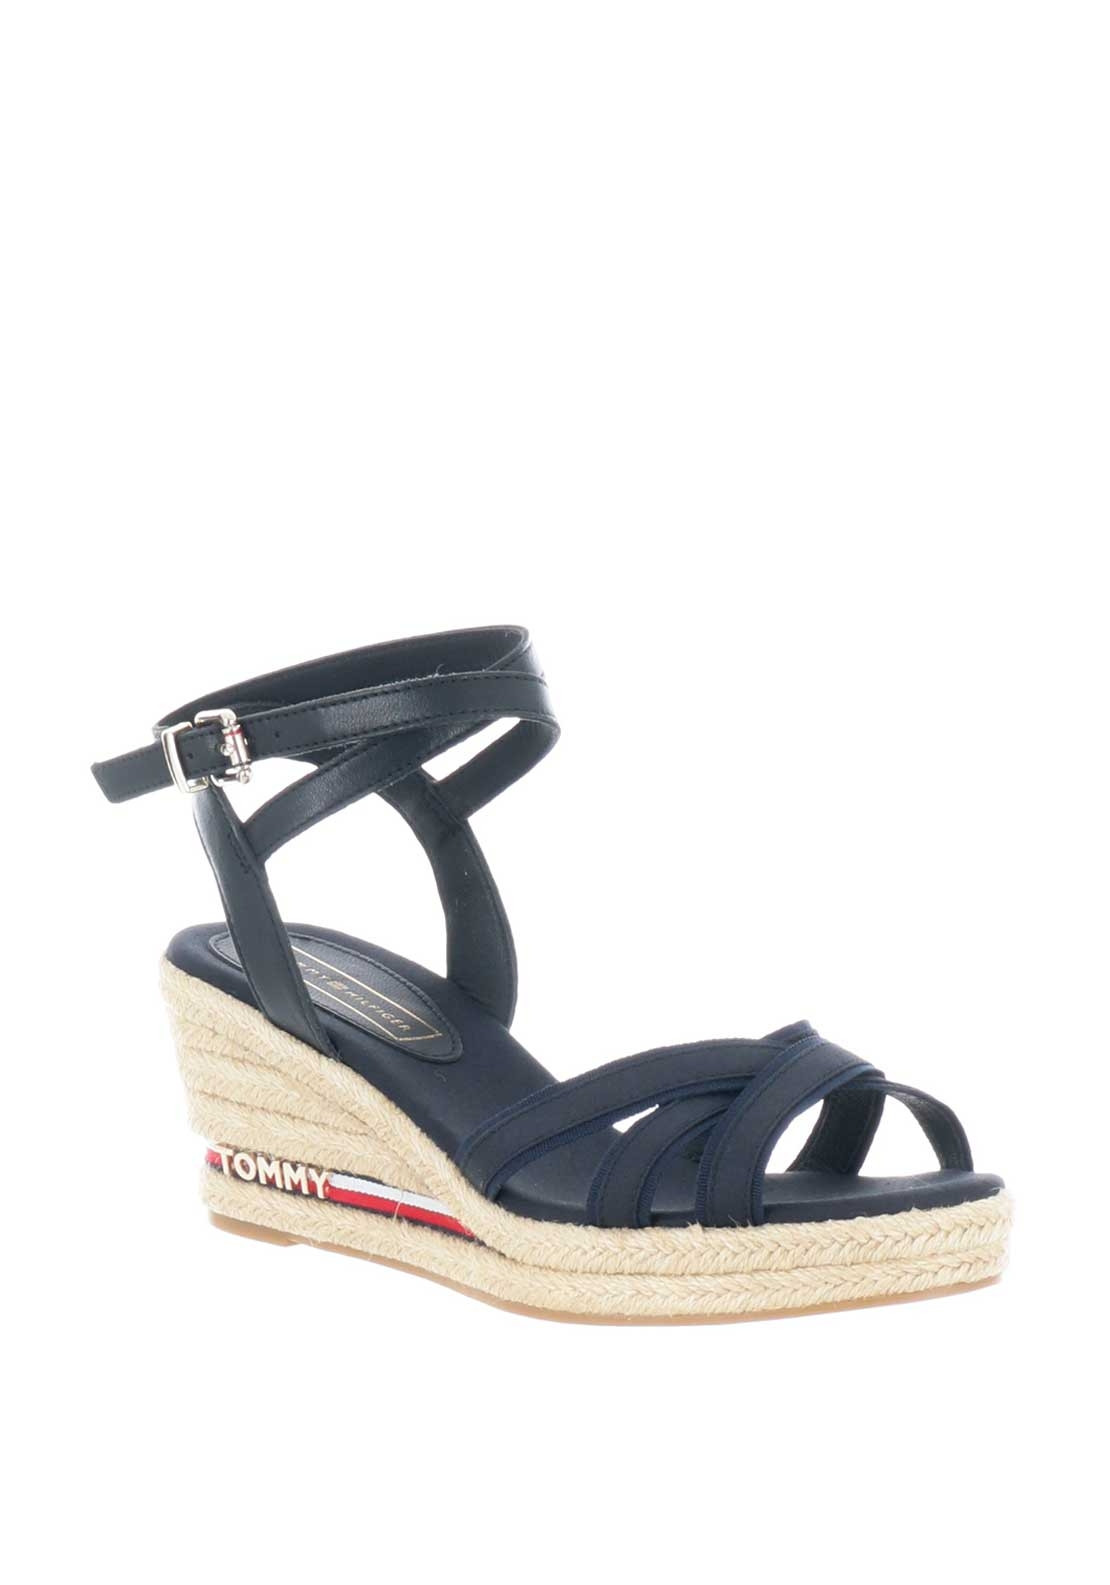 fef30522 Tommy Hilfiger Womens Iconic Elba Wedge Sandals, Navy. Be the first to  review this product